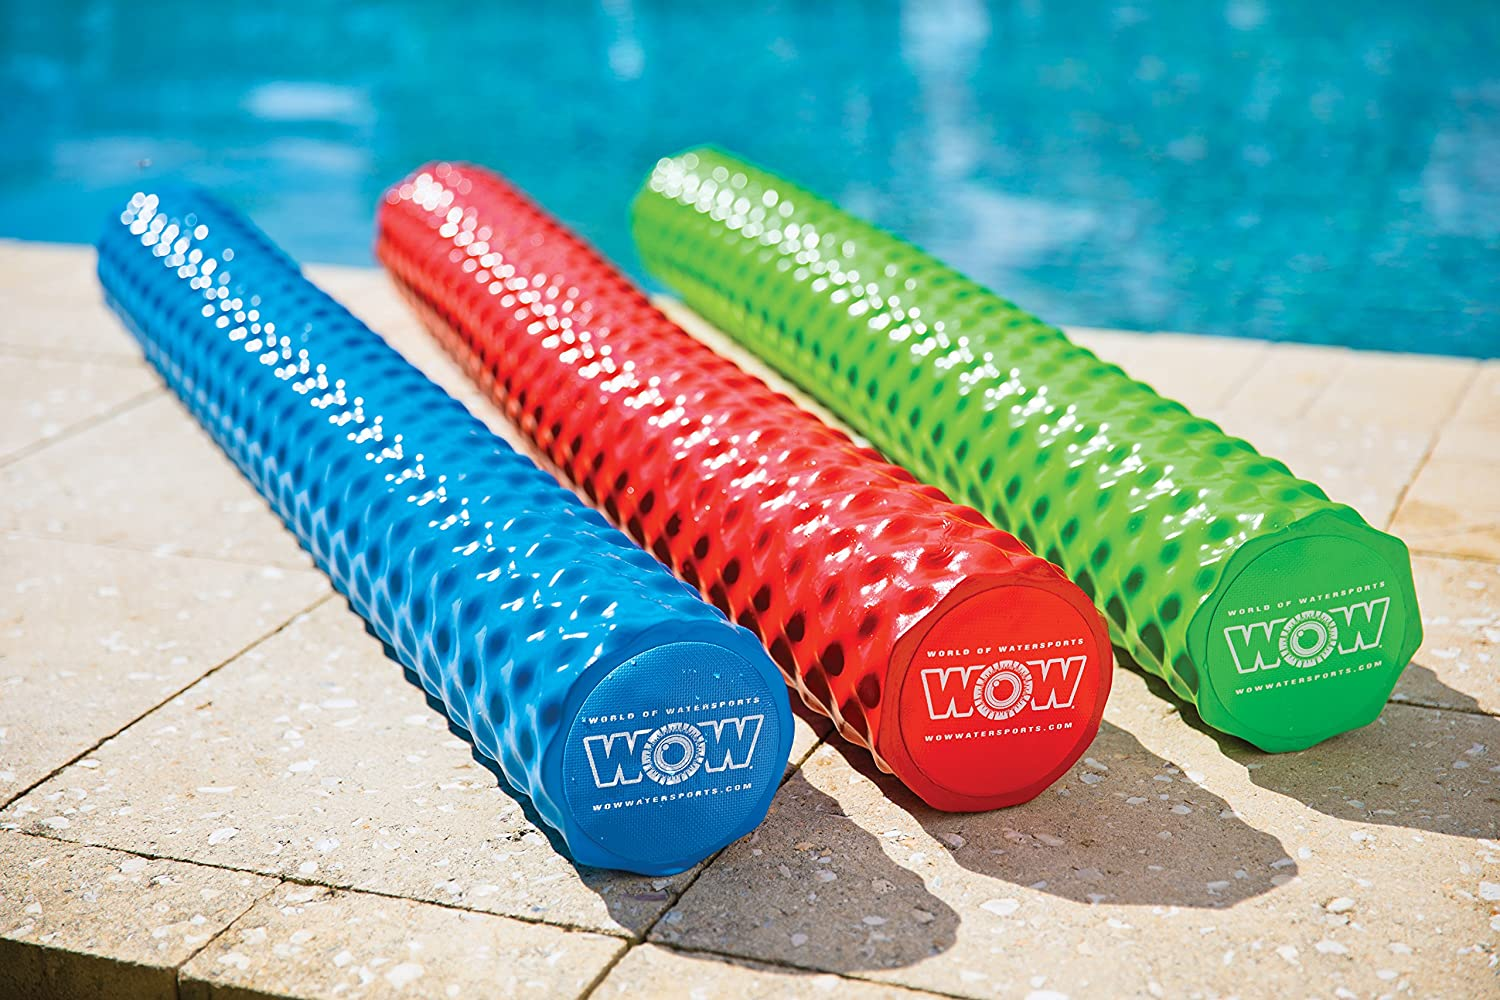 Com Wow World Of Watersports 17 2060b First Class Soft Dipped Foam Pool Noodle Blue Automotive